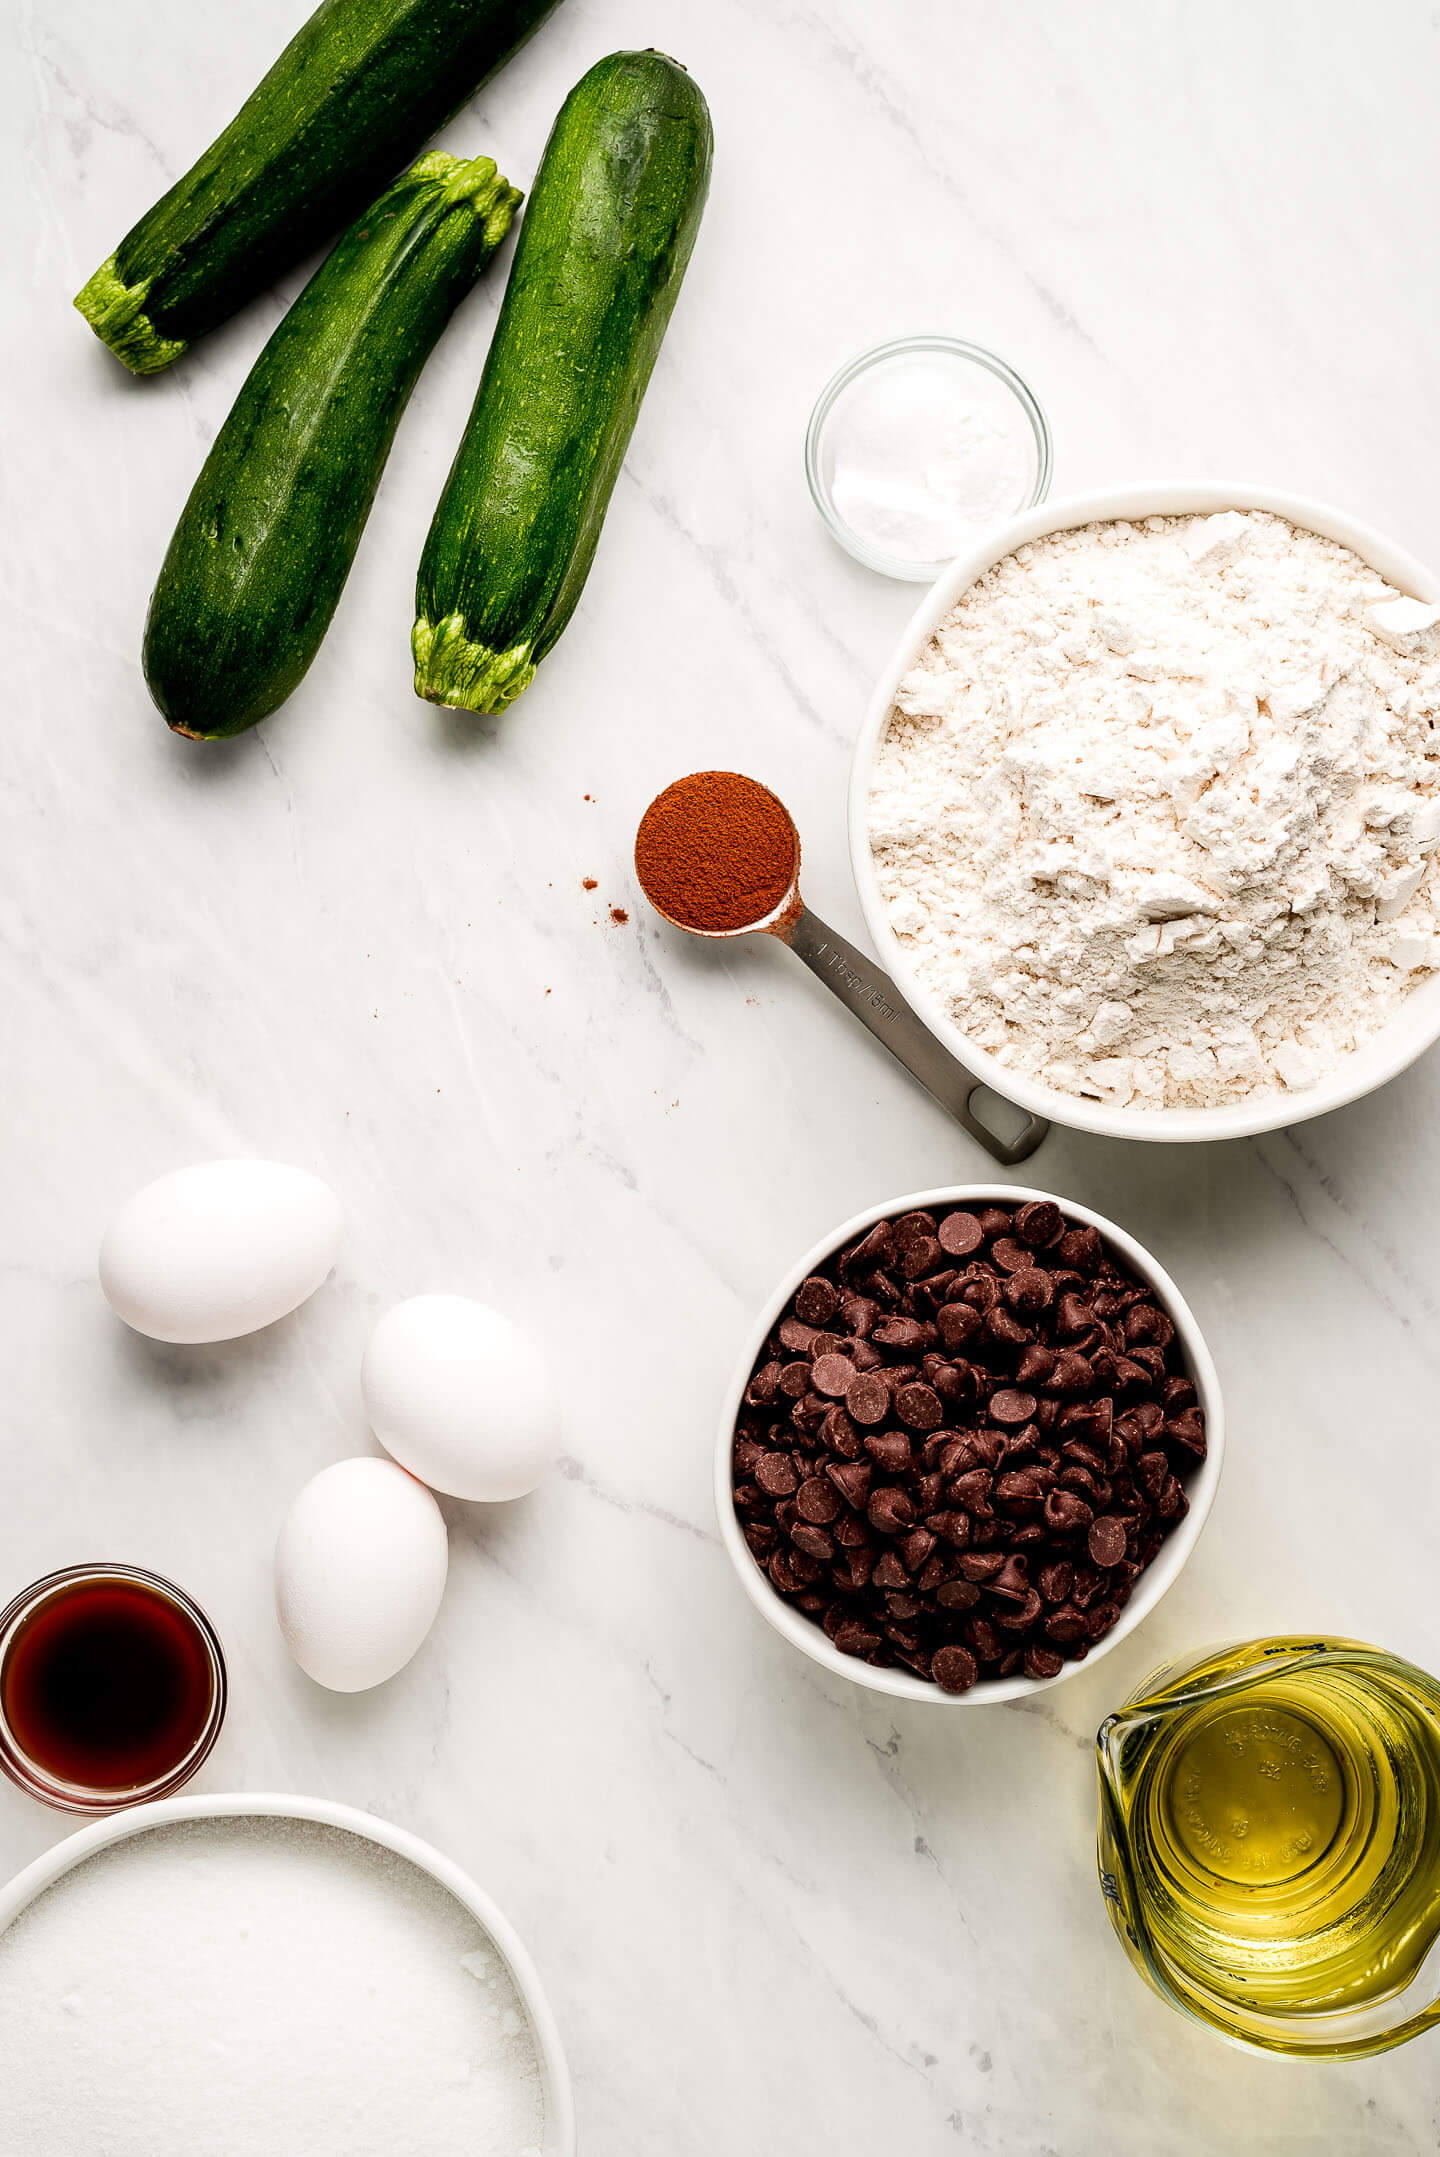 Ingredients on a marble surface: zucchini, flour, cinnamon, baking soda, chocolate chips, oil, eggs, sugar, and vanilla extract.